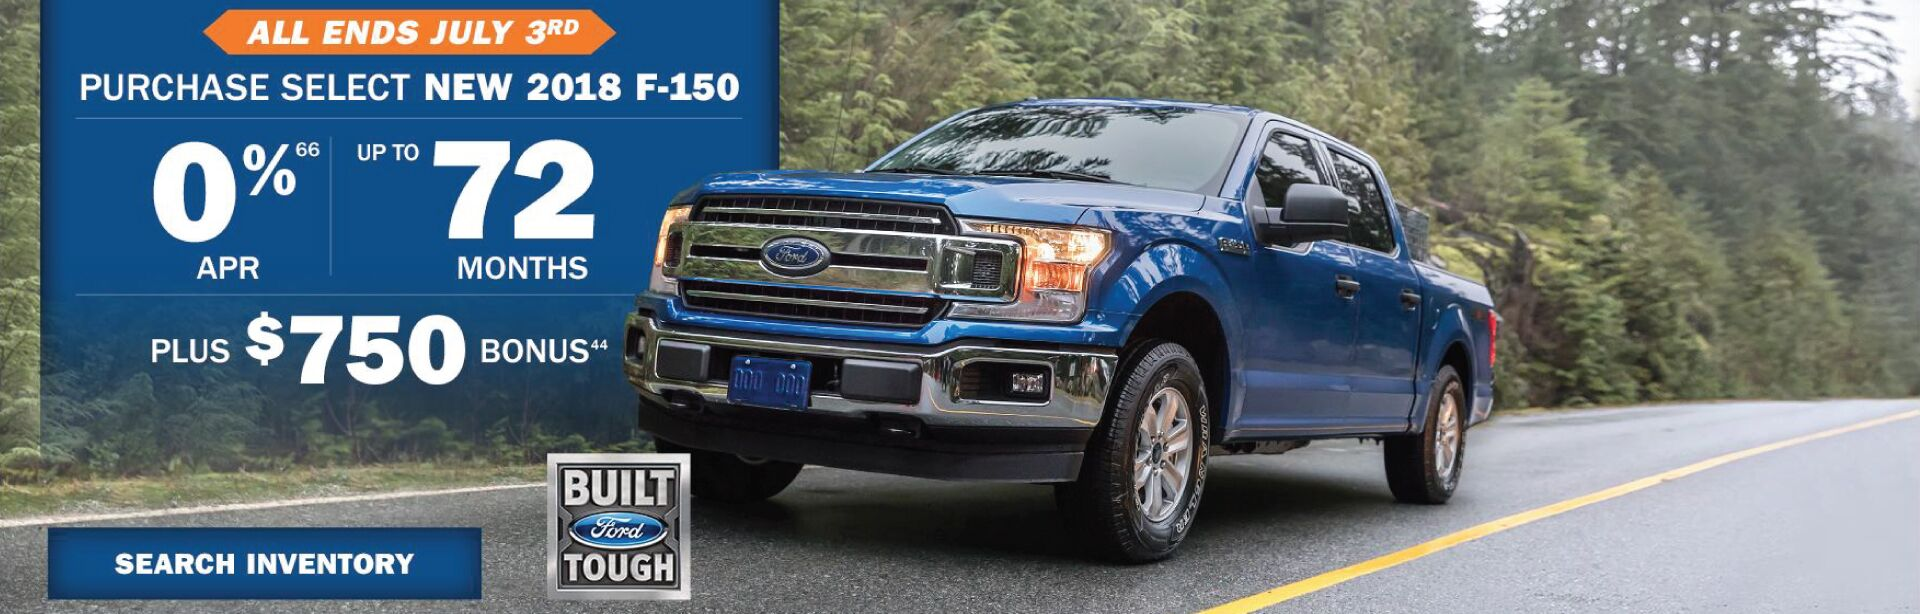 F-150 June Incentives